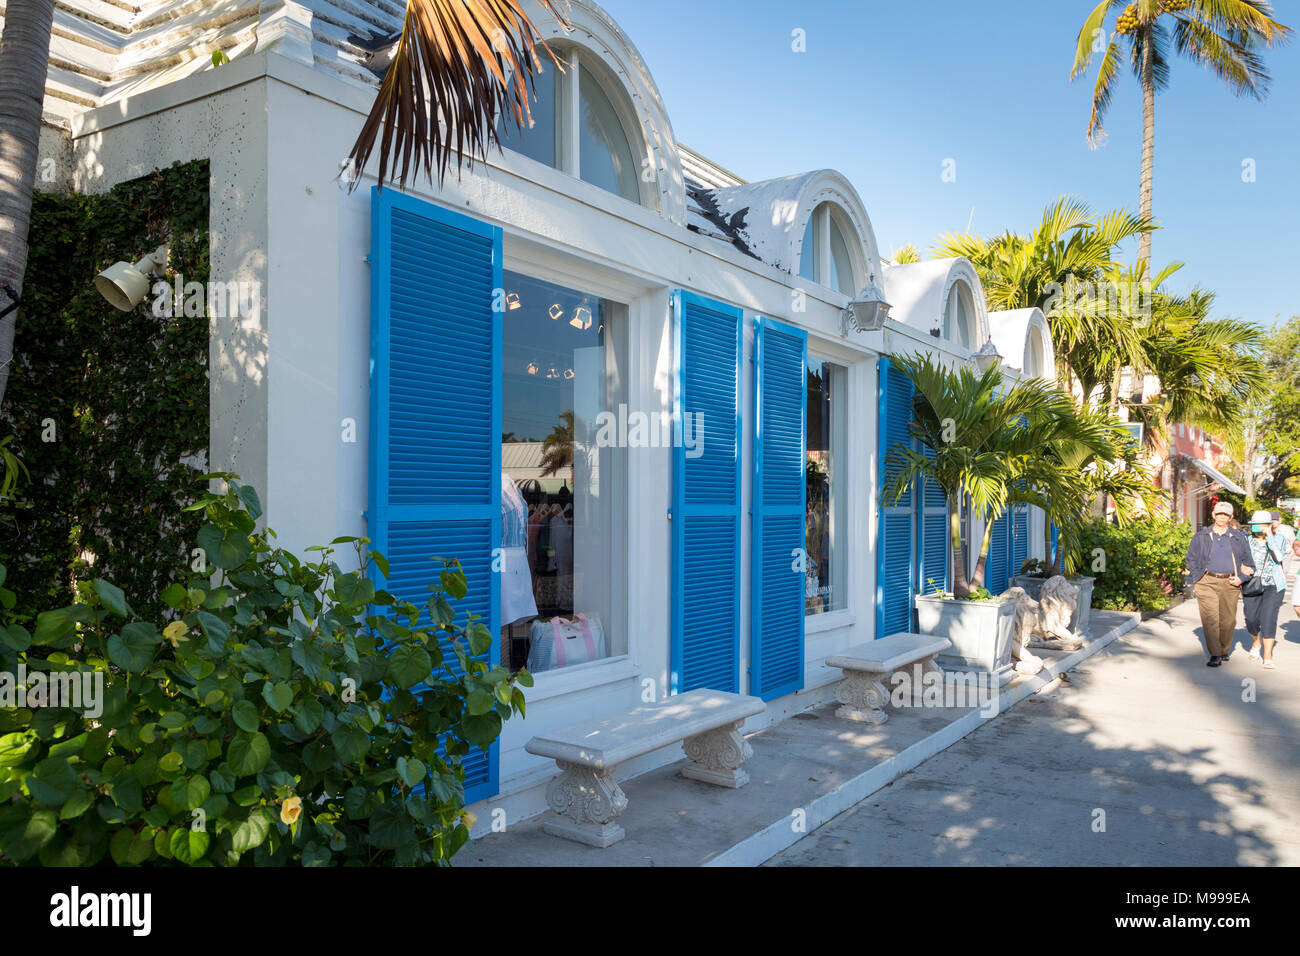 Blue shutters on French-inspired clothing boutique in 3rd Street shopping district, Naples, Florida, USA - Stock Image